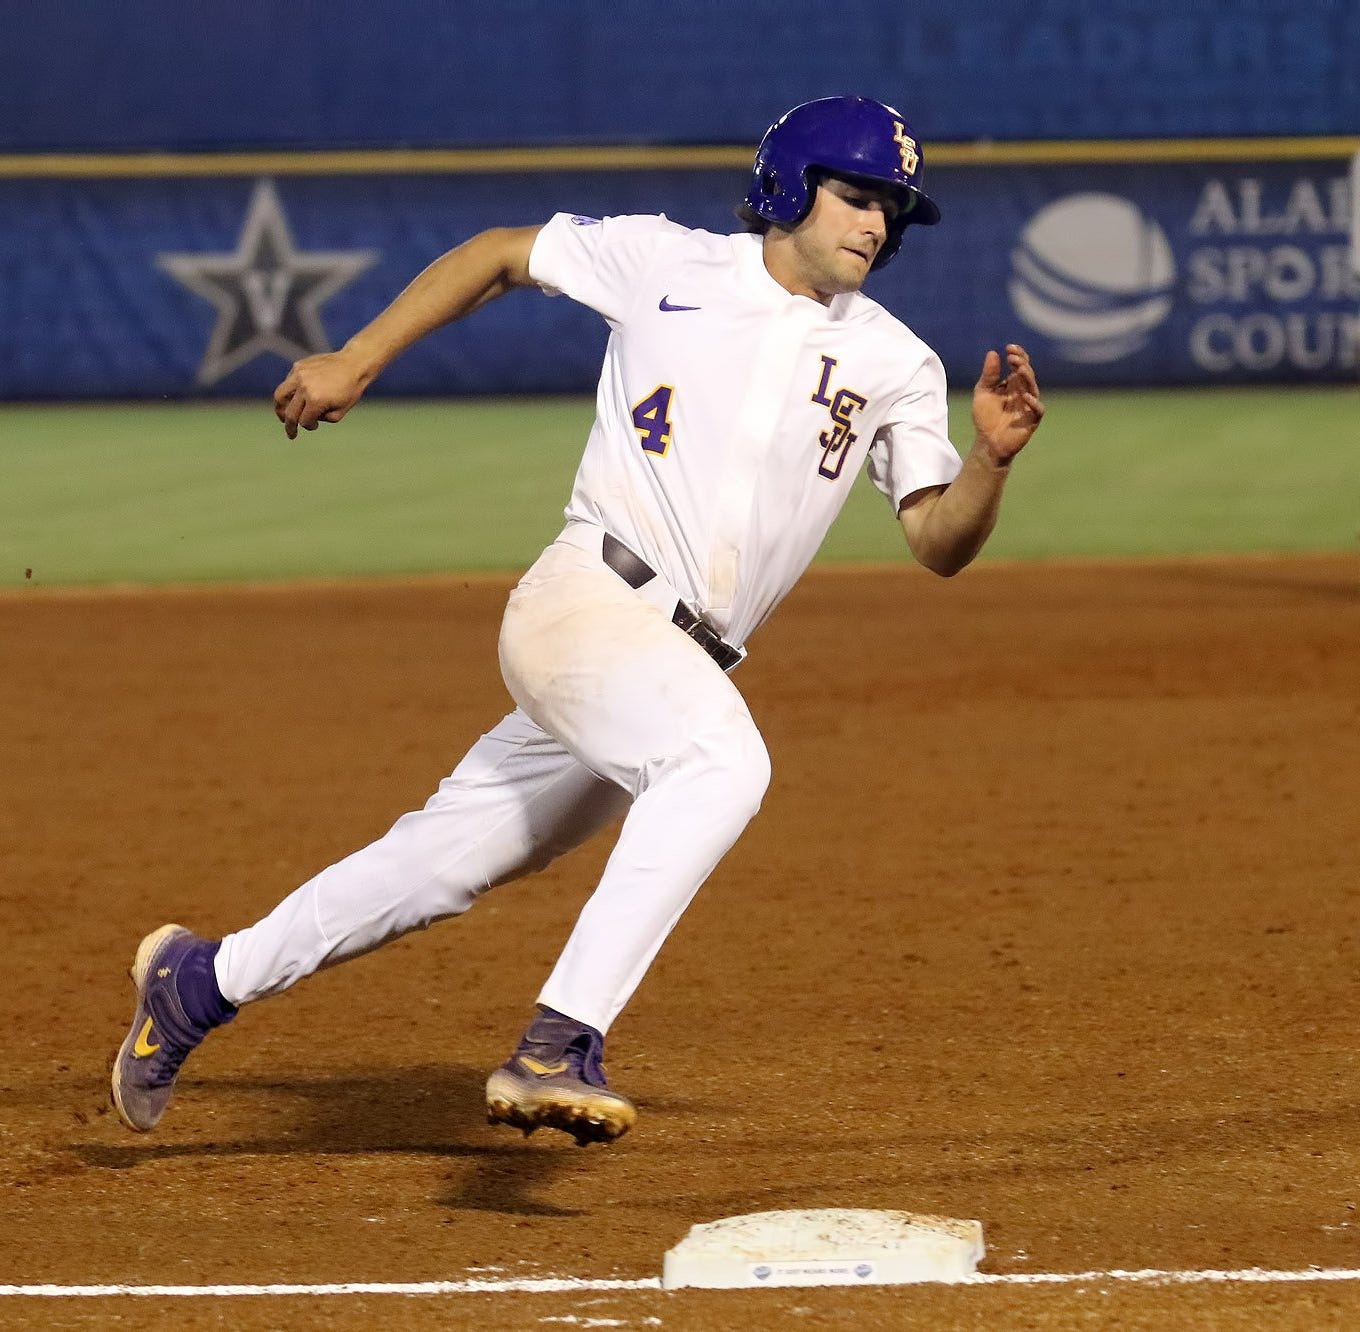 SEC Baseball Tournament 2019: How to watch LSU vs. Mississippi State on TV, stream